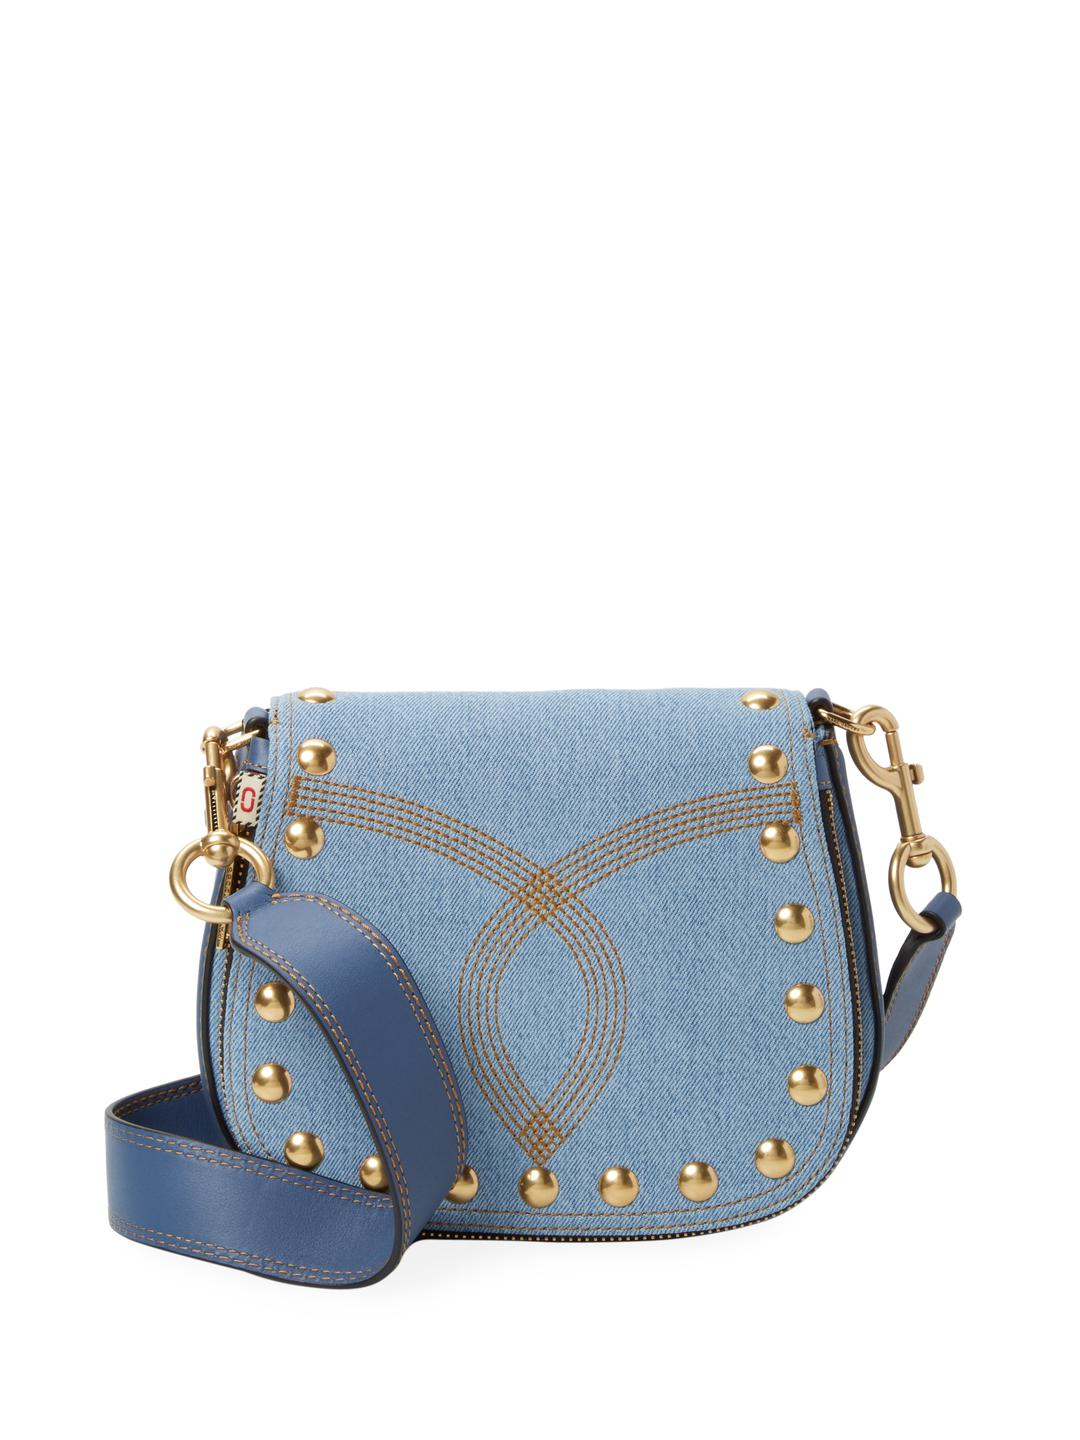 937fa7dccad0 Gallery. Previously sold at  Gilt · Women s Saddle Bags Women s Marc Jacobs  Nomad ...